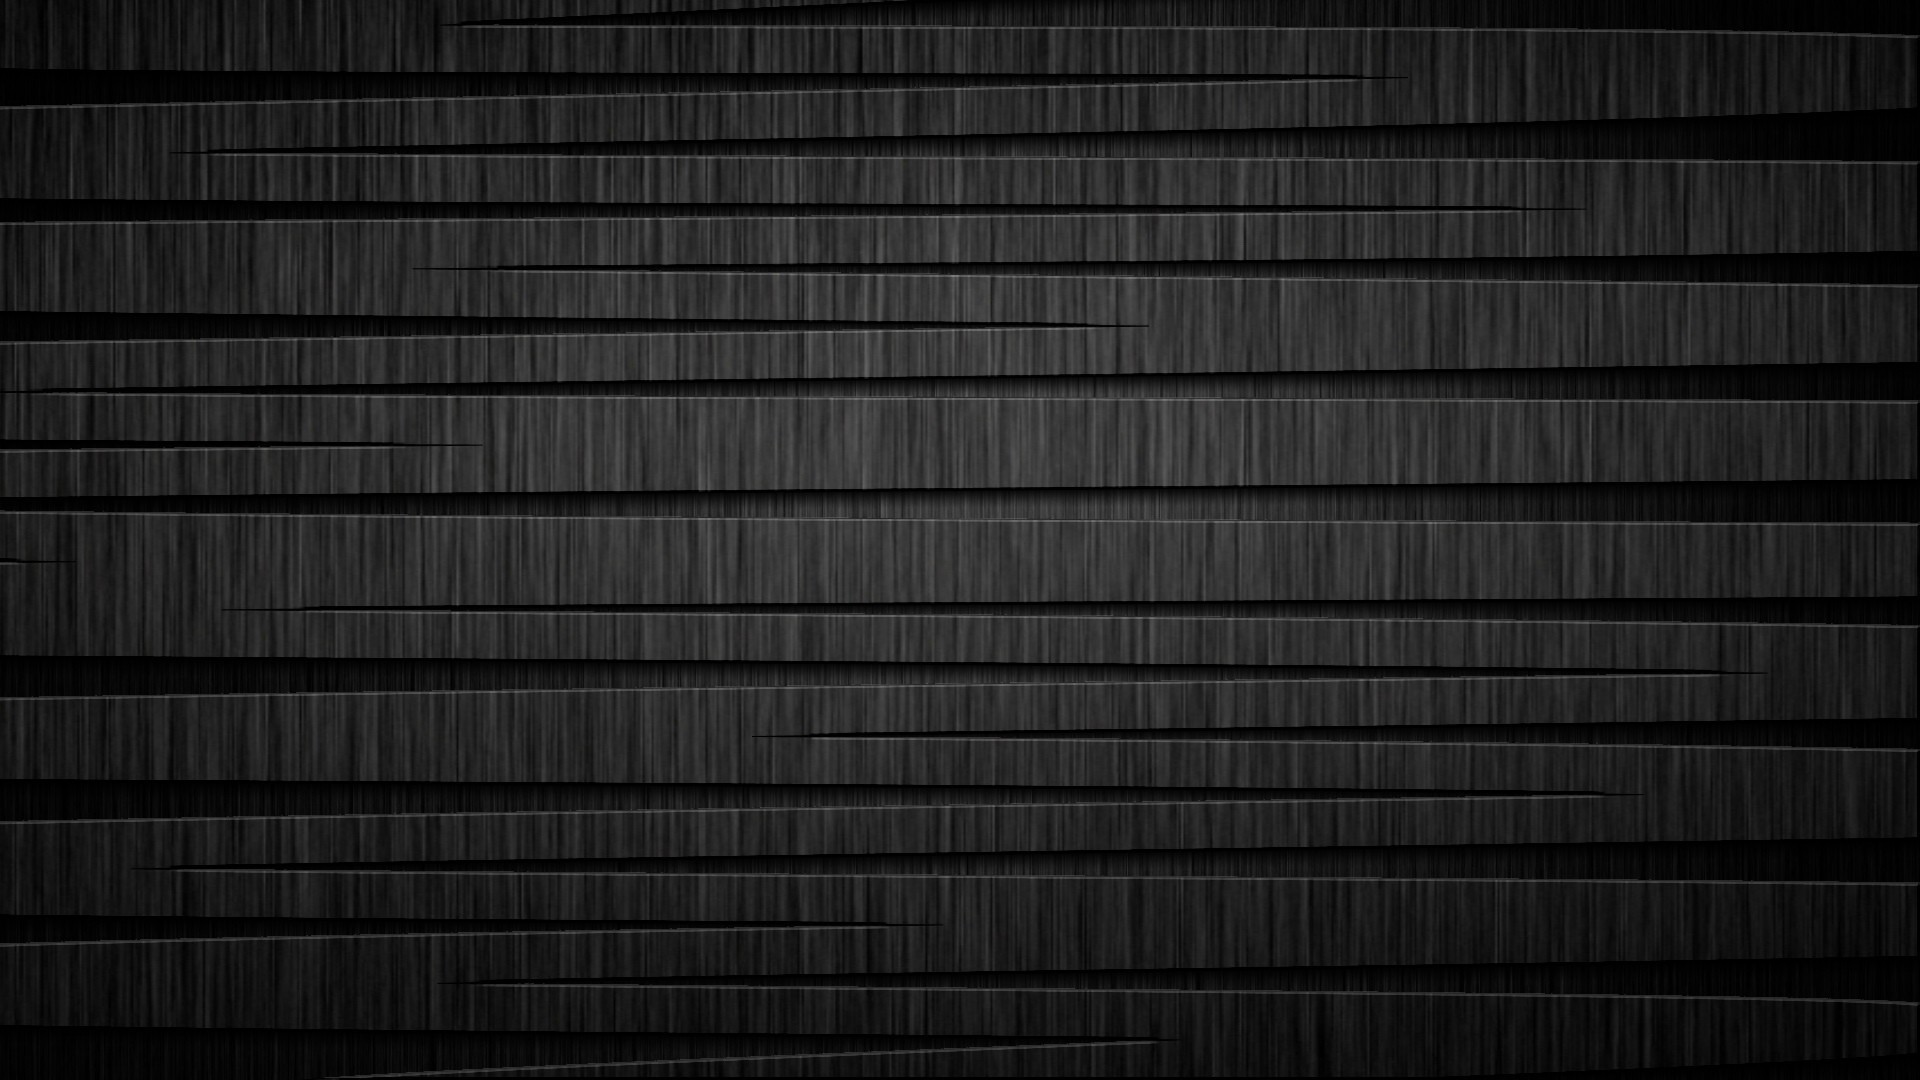 black-abstract-3